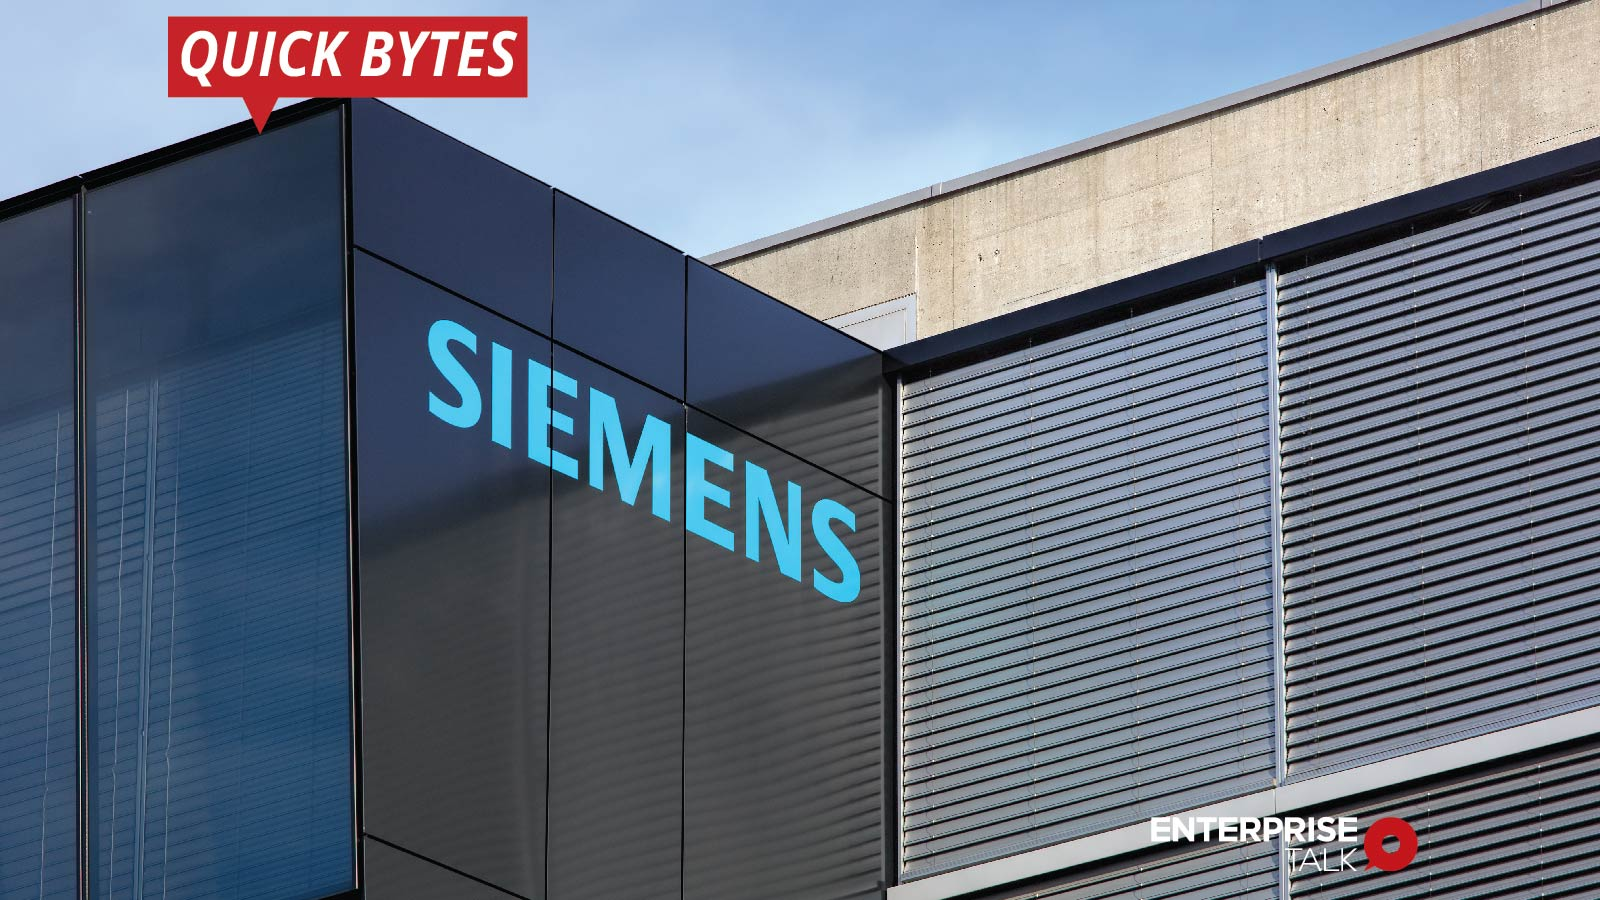 Siemens Introduces Digital Tools for Workplaces